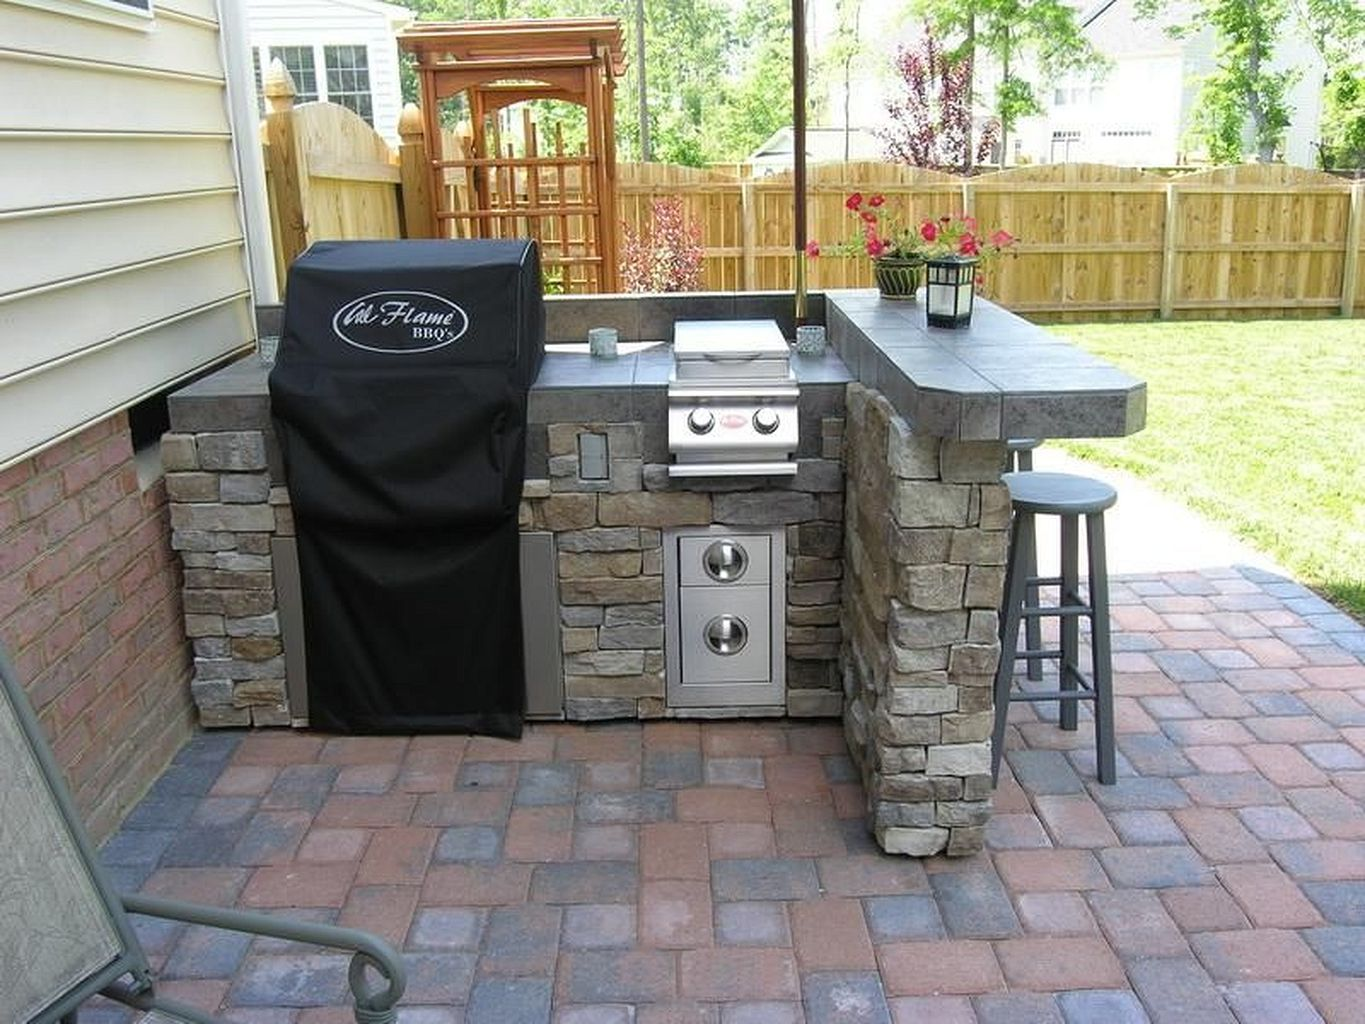 50 Best Landscaping Design Ideas For Backyards And Front Yards Https Www Mobmasker Com La Small Outdoor Kitchens Outdoor Kitchen Decor Outdoor Kitchen Plans